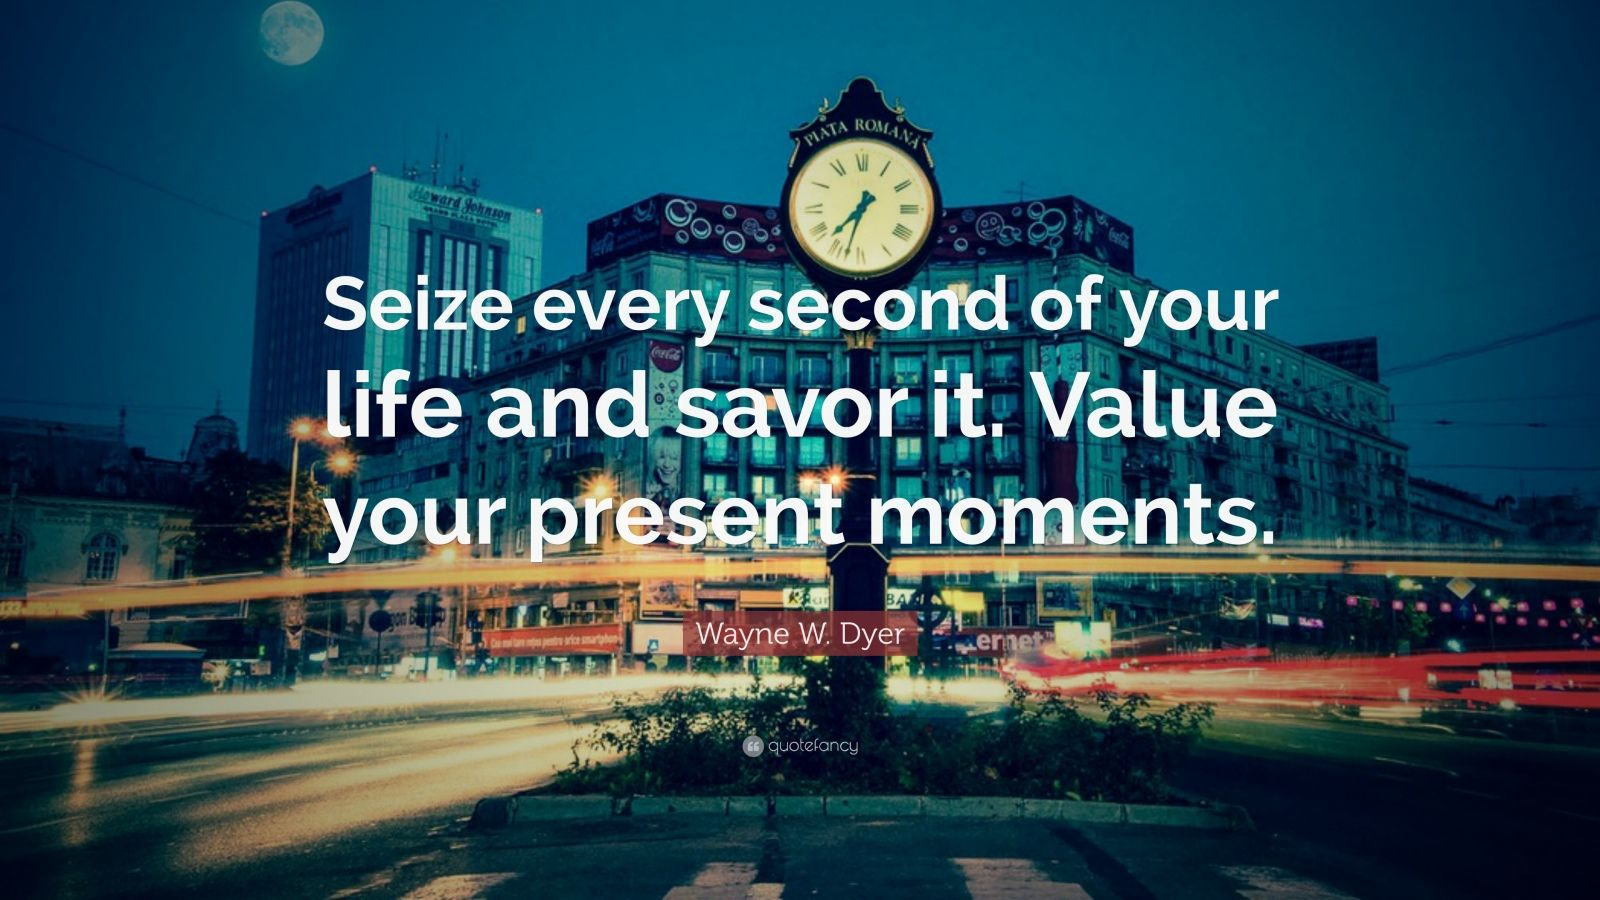 """Wayne W. Dyer Quote: """"Seize every second of your life and savor it. Value your present moments."""""""